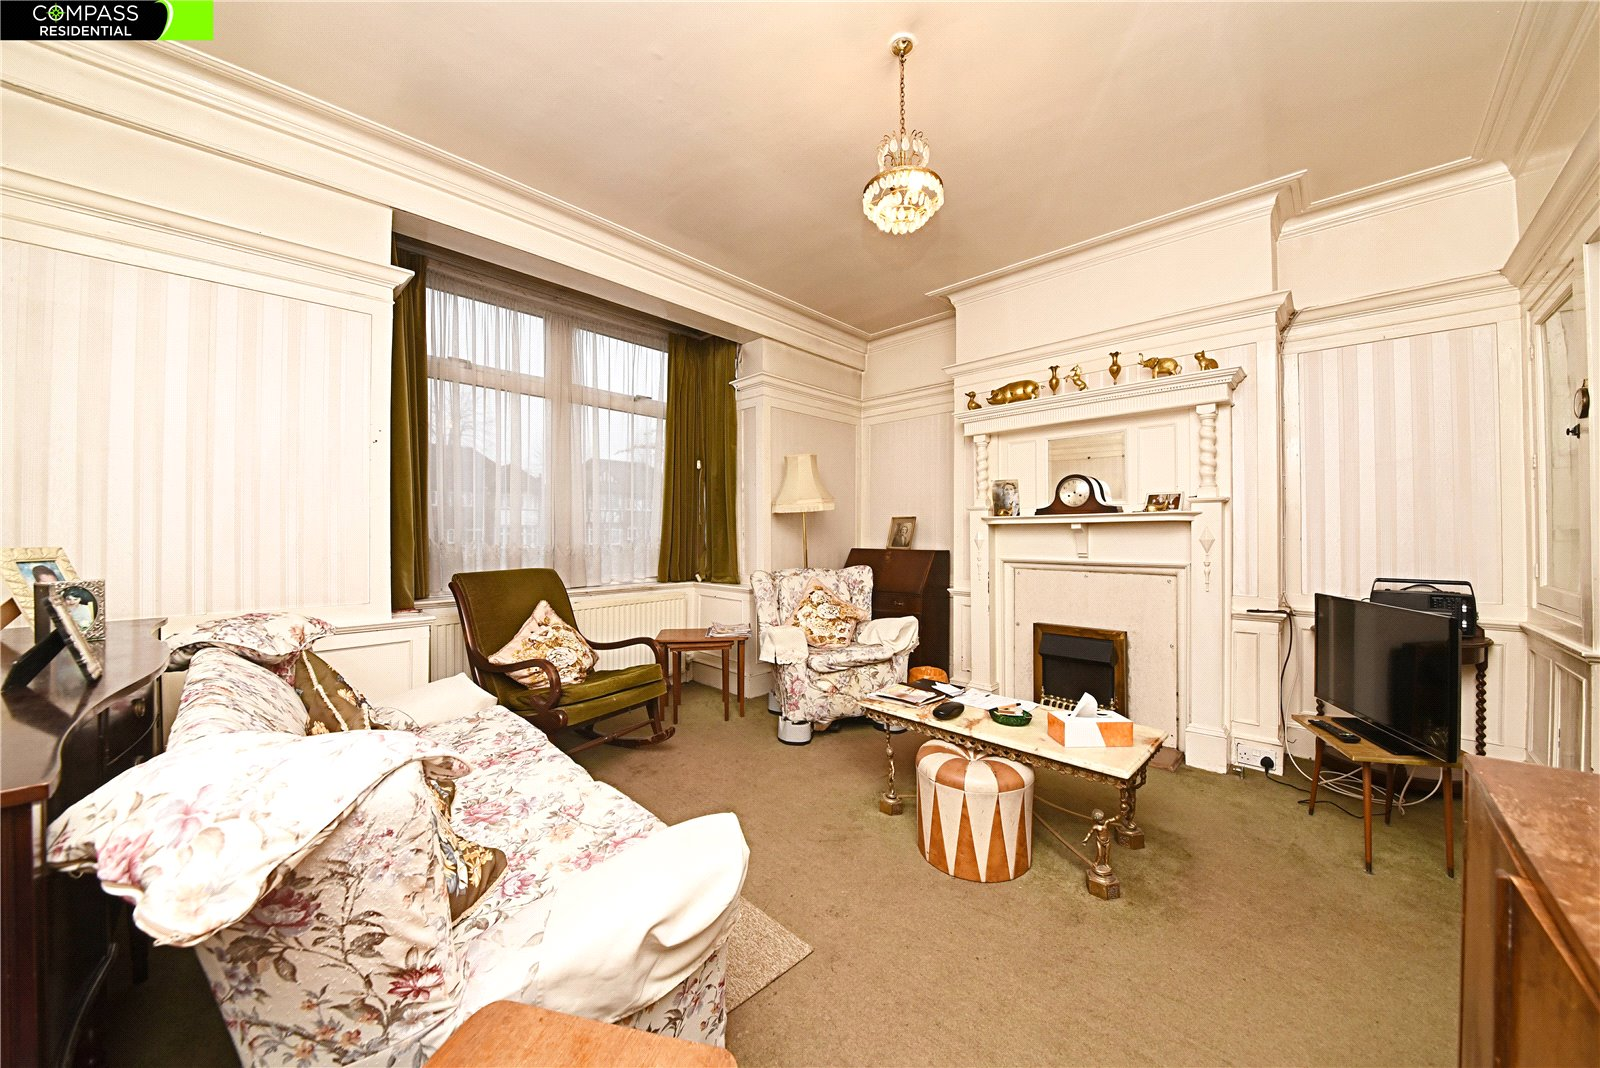 3 bed house for sale in Whetstone, N20 9PT 1